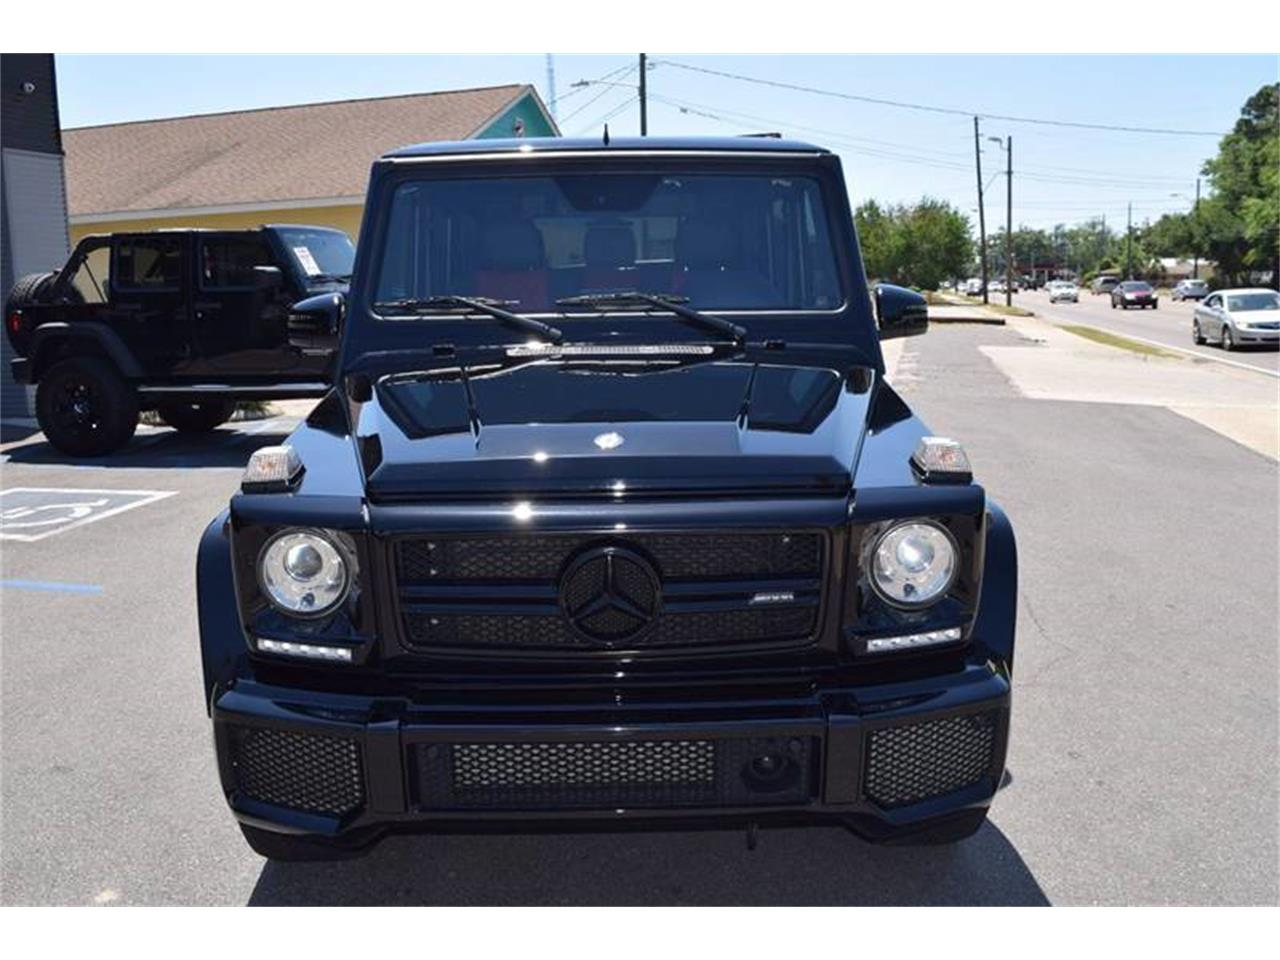 2016 Mercedes-Benz G-Class (CC-1092294) for sale in Biloxi, Mississippi